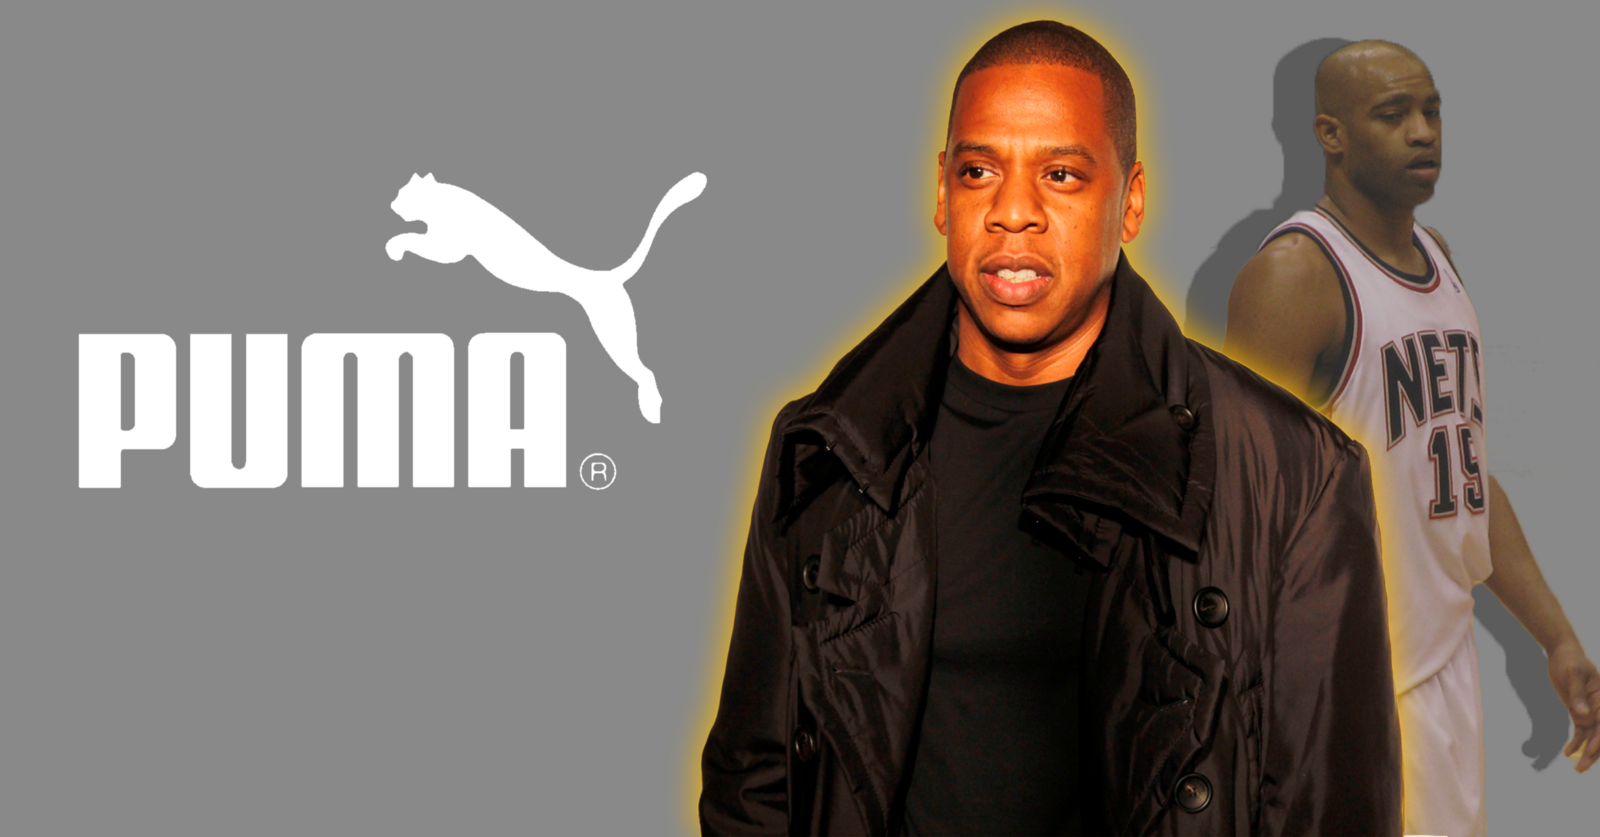 bd8e7b83e5f (Vinsanity by TheTruthAbout   Jay-Z 2011 by. Joella Marano   Photo  Illustration by Nathan Graber-Lipperman)